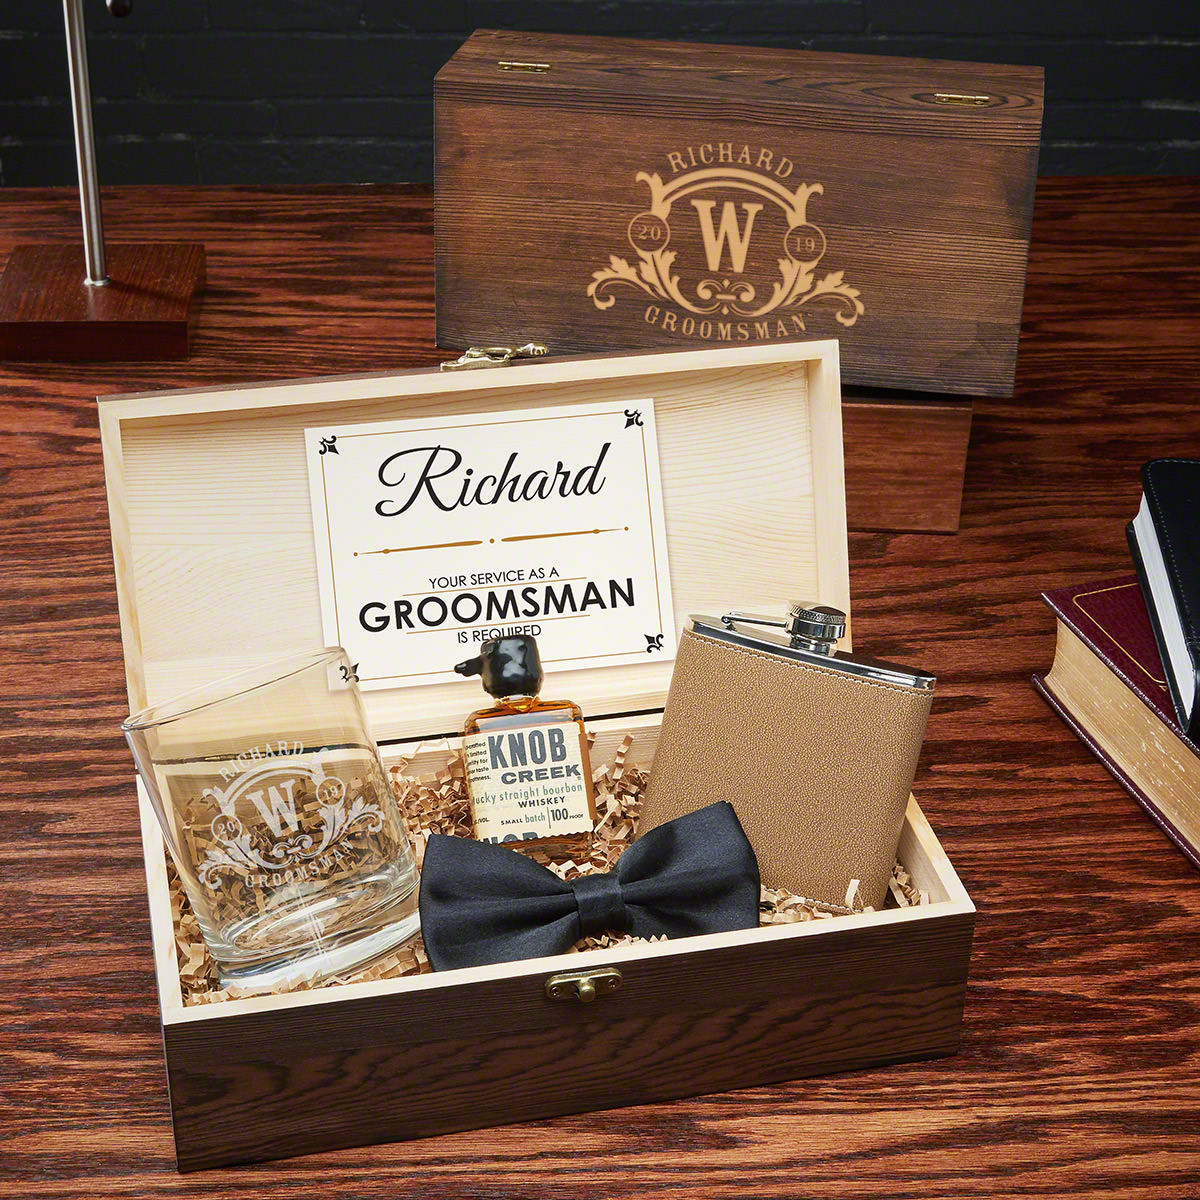 Surprise the guys who will be standing alongside their best friend at the altar on wedding day with a gift box set they will never expect. This five piece personalized groomsmen gift box set comes packed with valuable amenities, and is sure to go down in #best